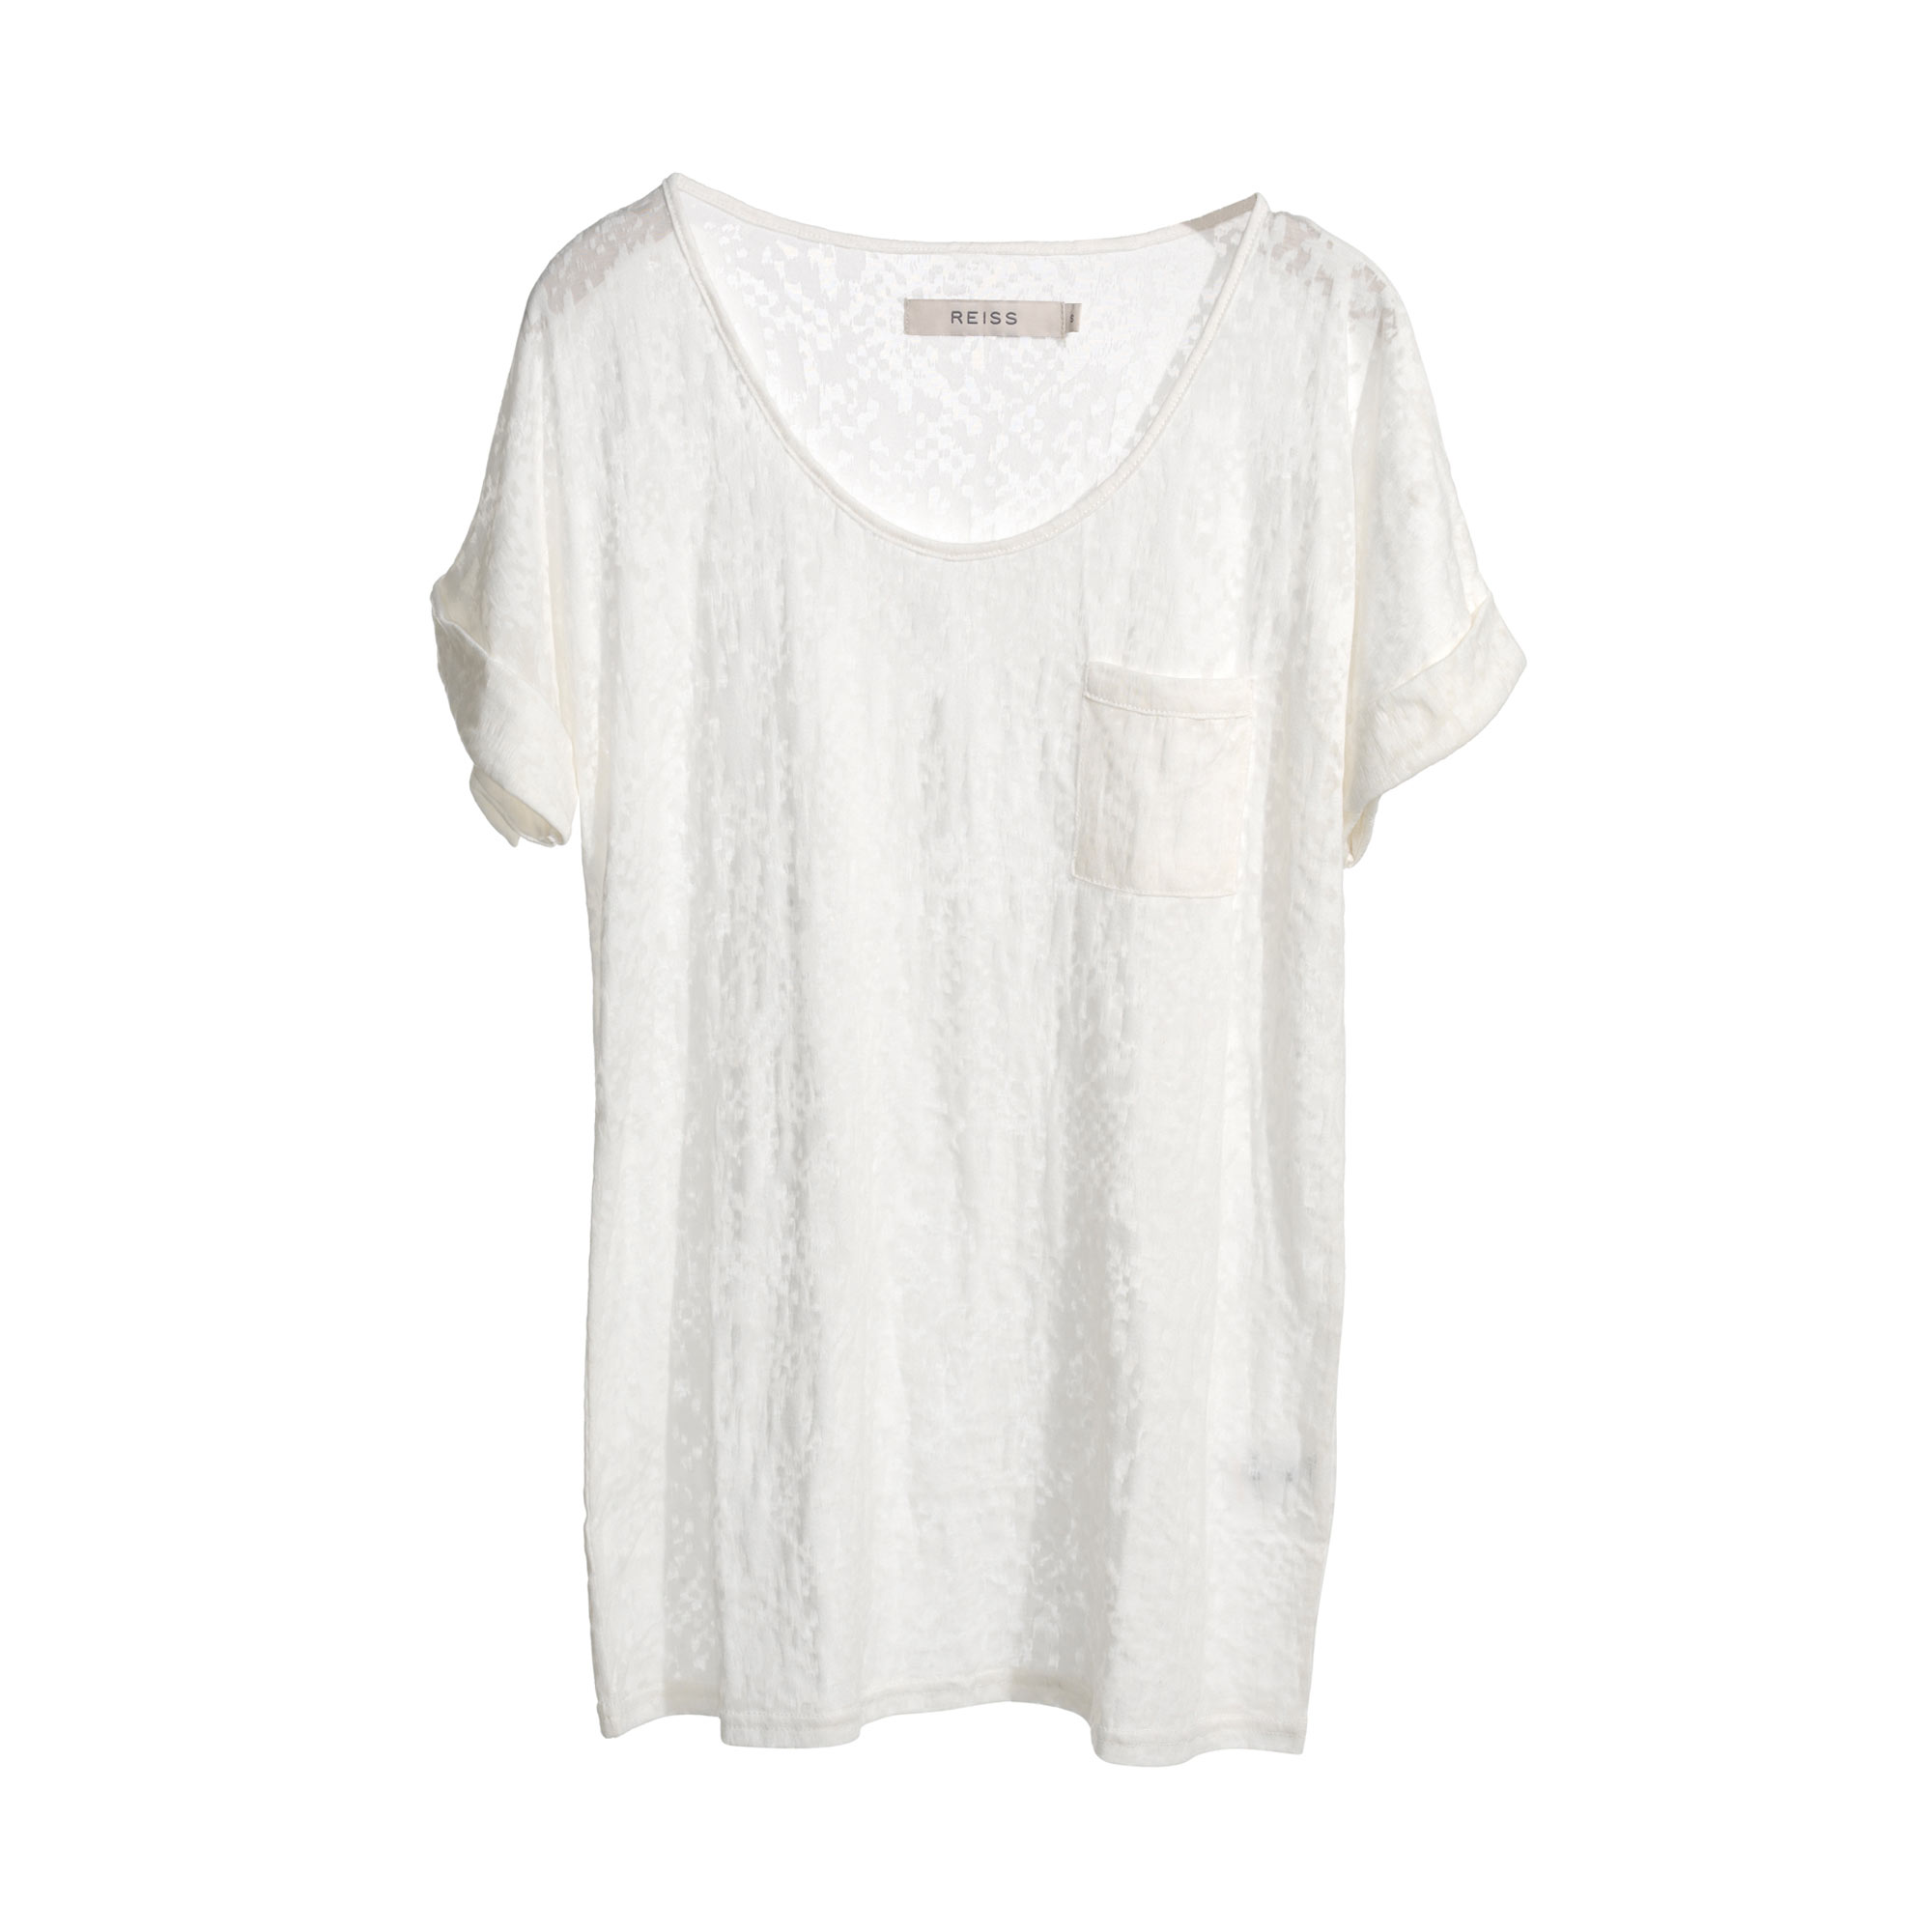 Reiss sunshine relaxed t-shirt in cream